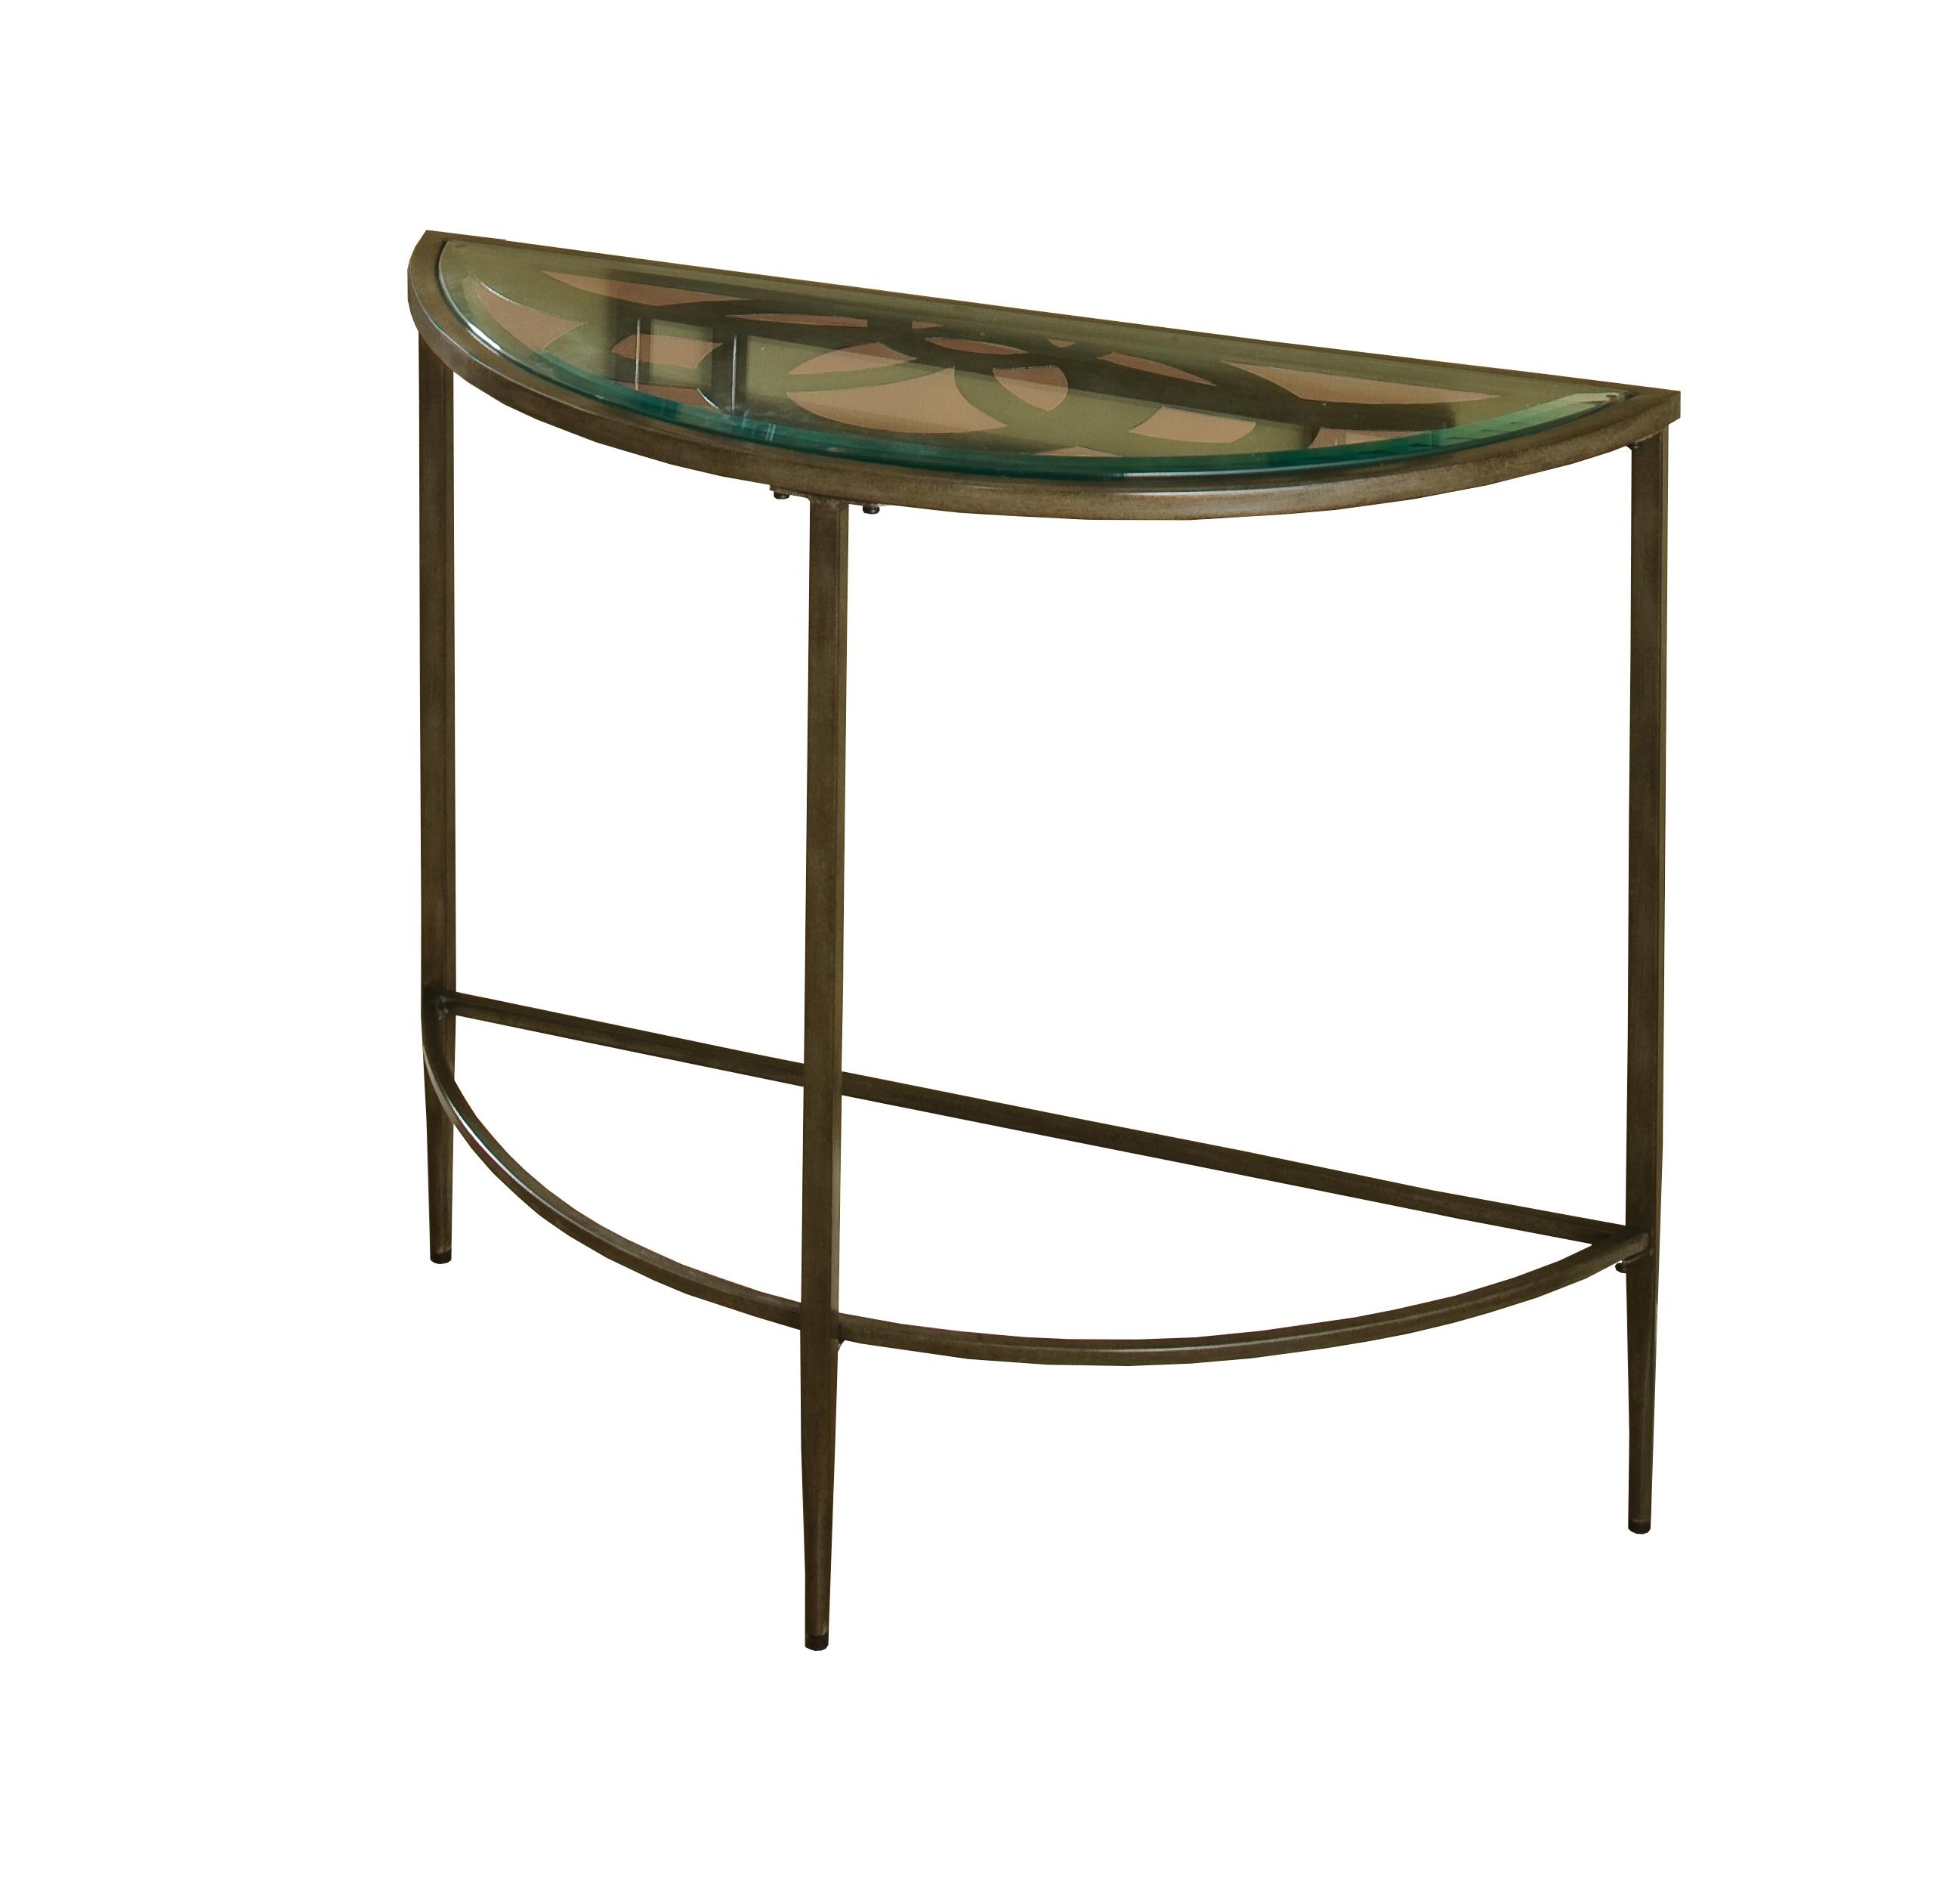 Hillsdale Marsala Console Table   - Item Number: 5497-884